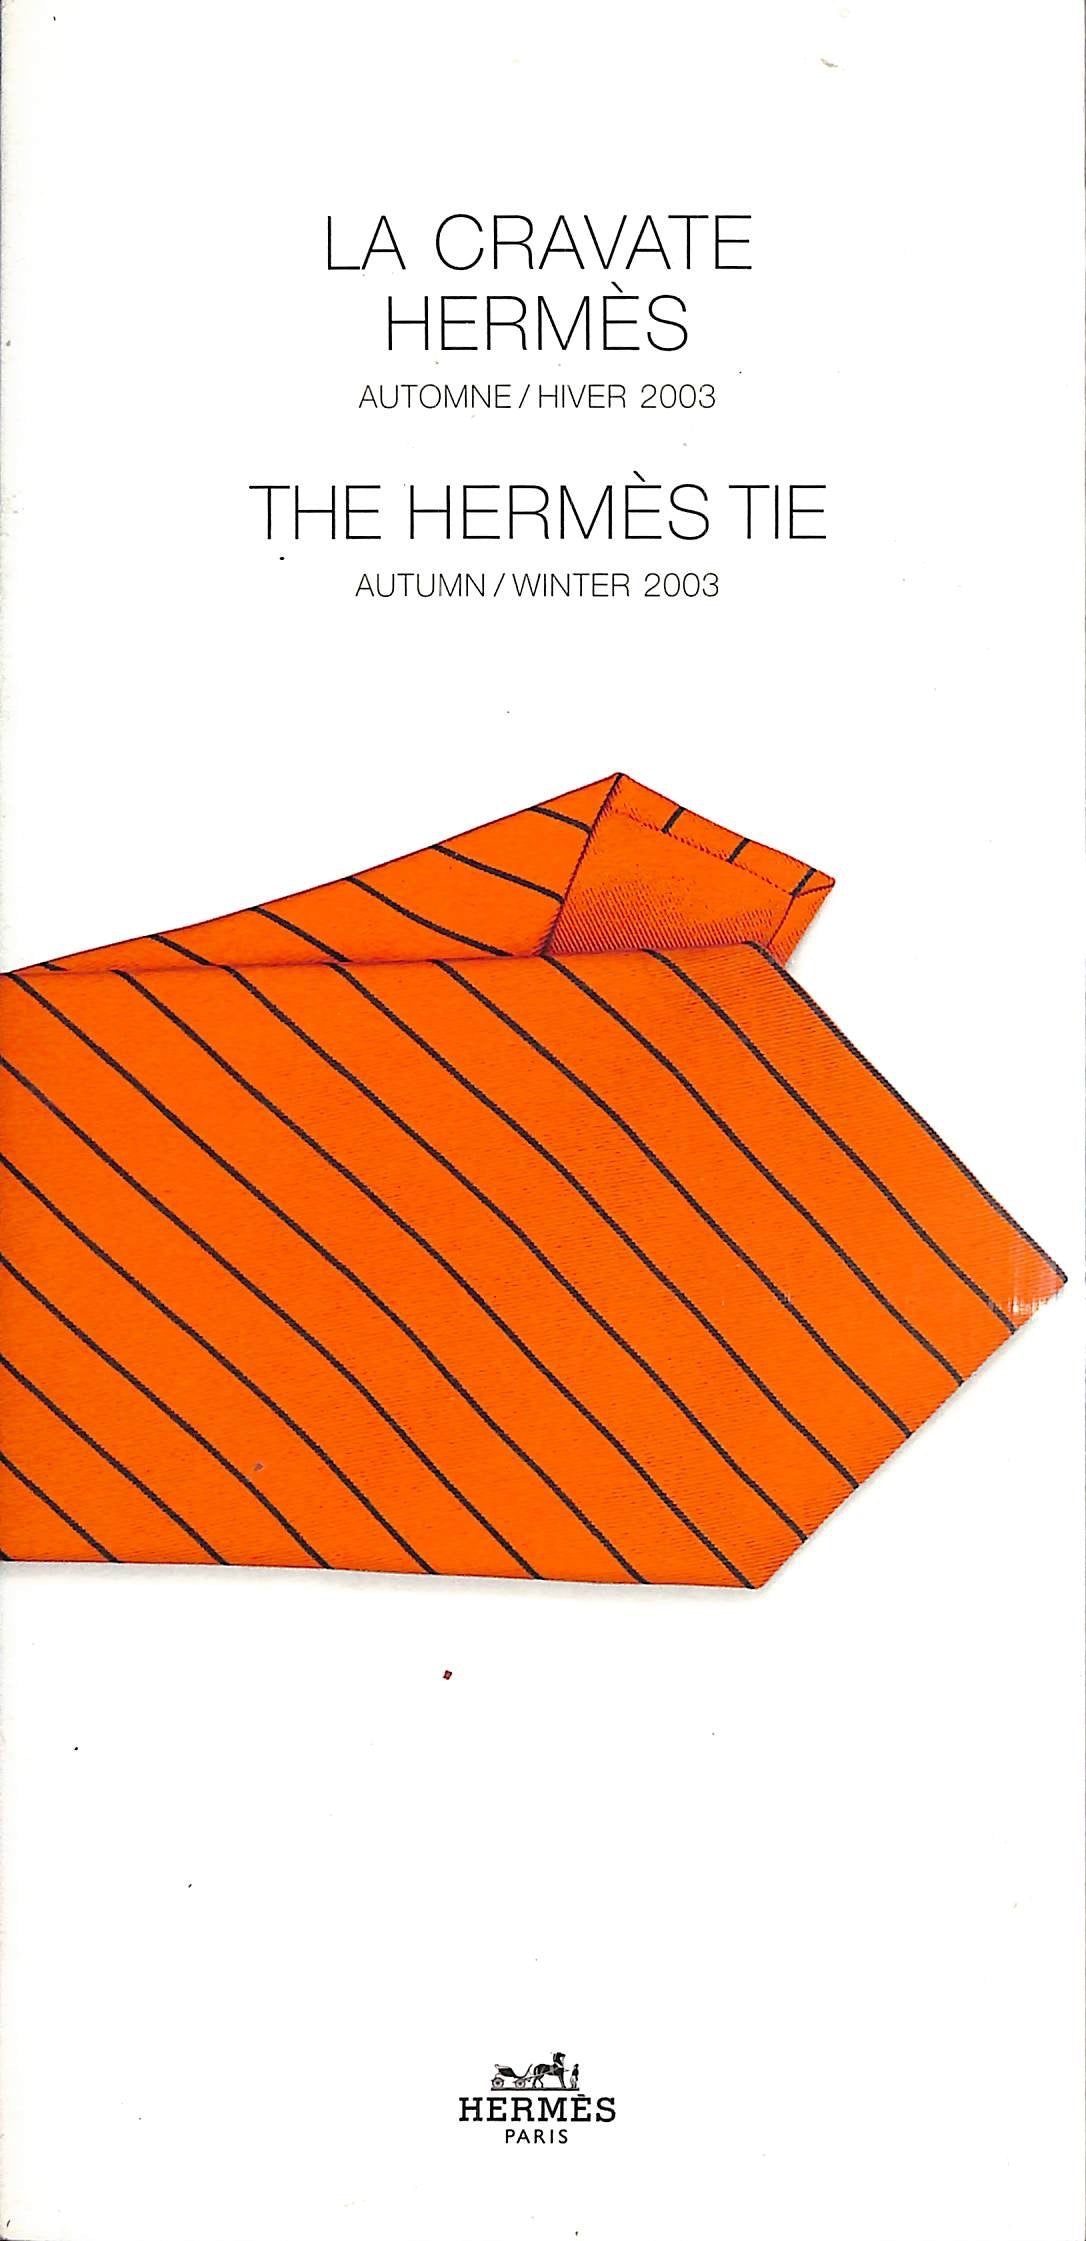 The Hermes Tie Autumn/Winter 2003